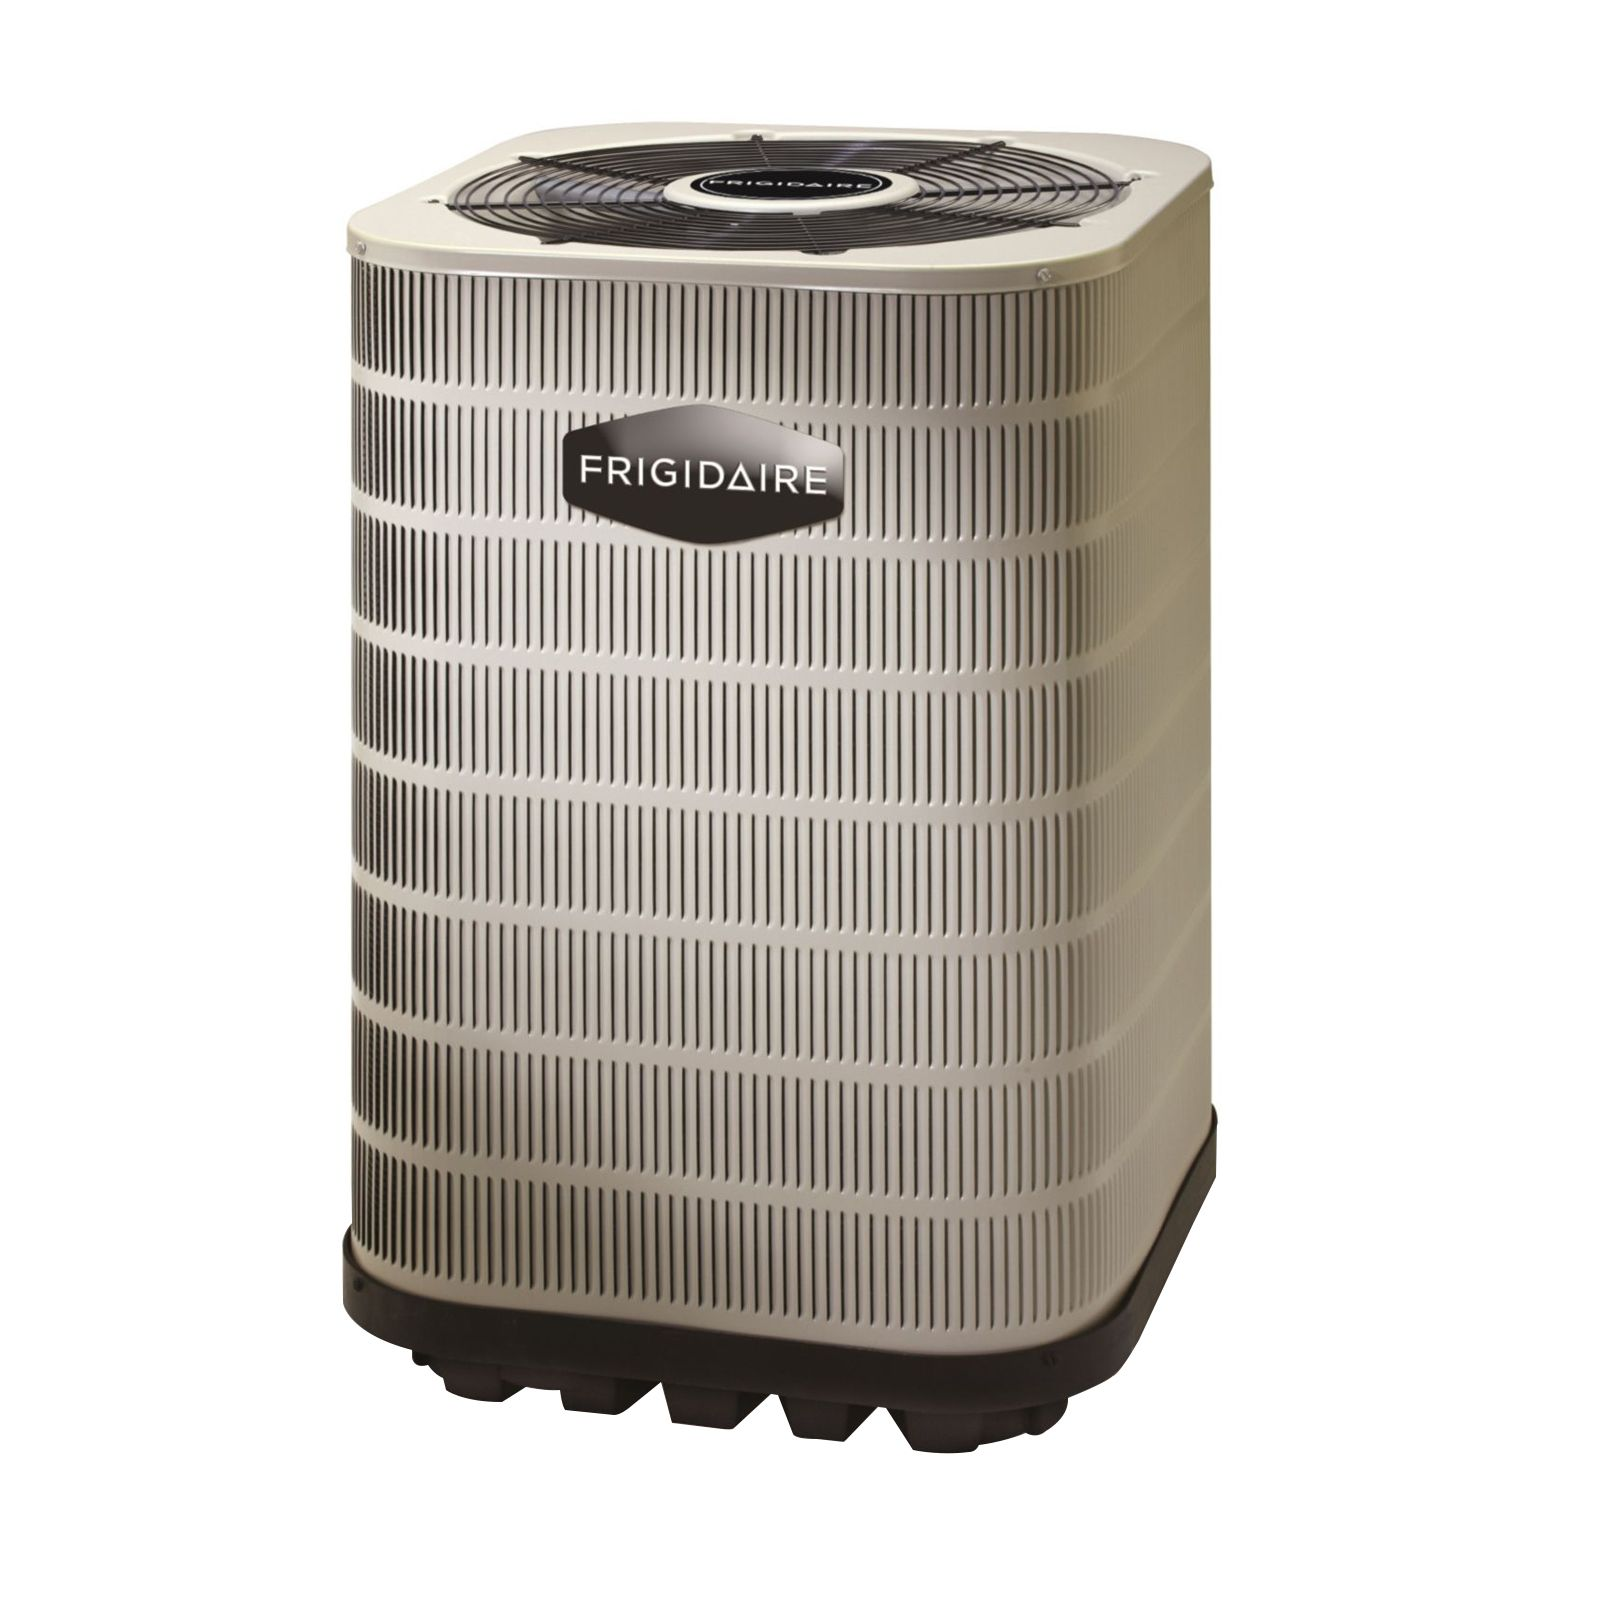 Frigidaire 921985E - ET4BE-042KA - 3 1/2 Ton 14 SEER High Efficiency Heat Pump, R410A